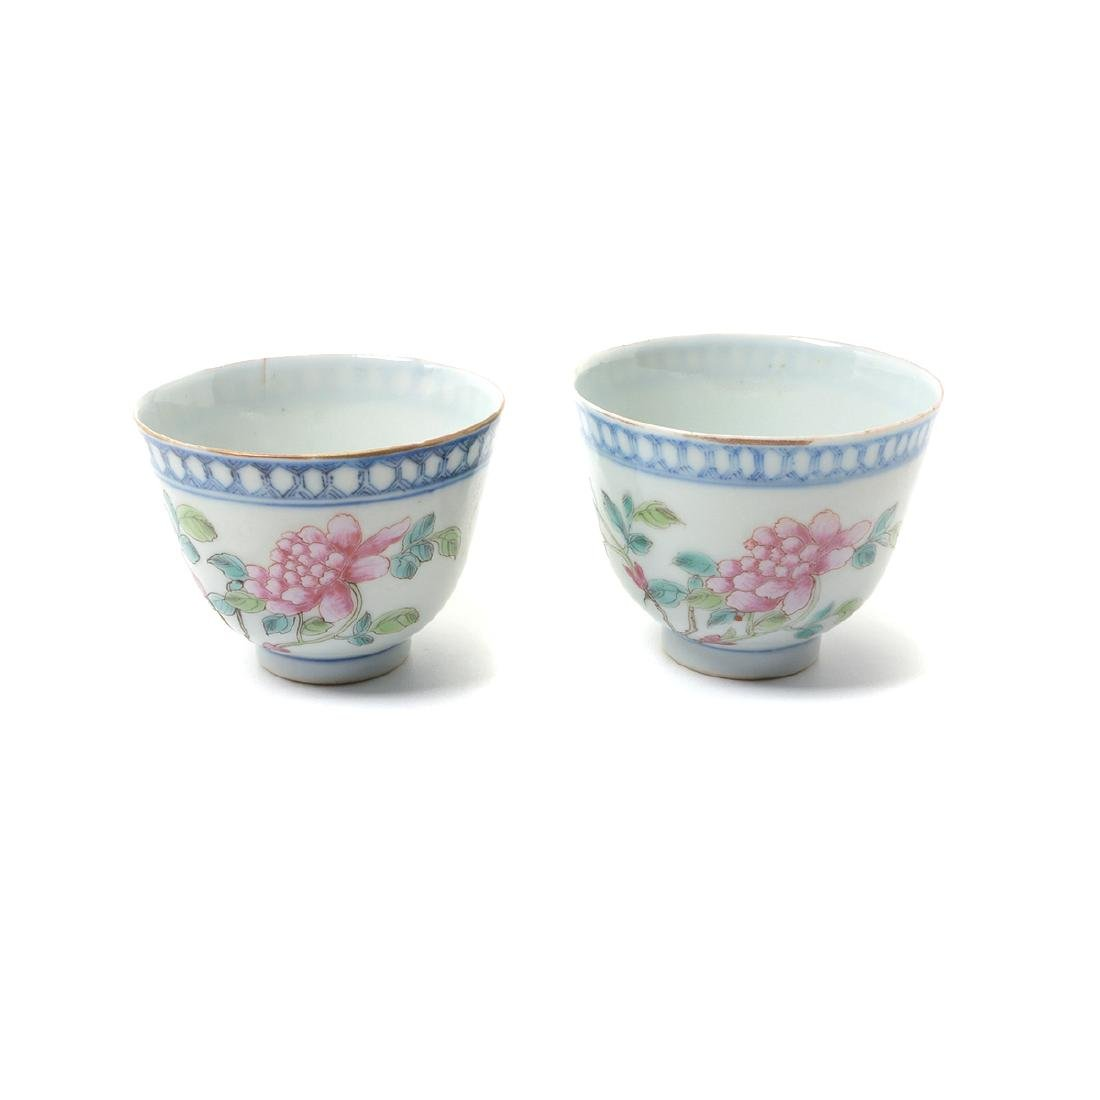 Pr of Famille Rose Cups with Silver Lids & Stands, - 2